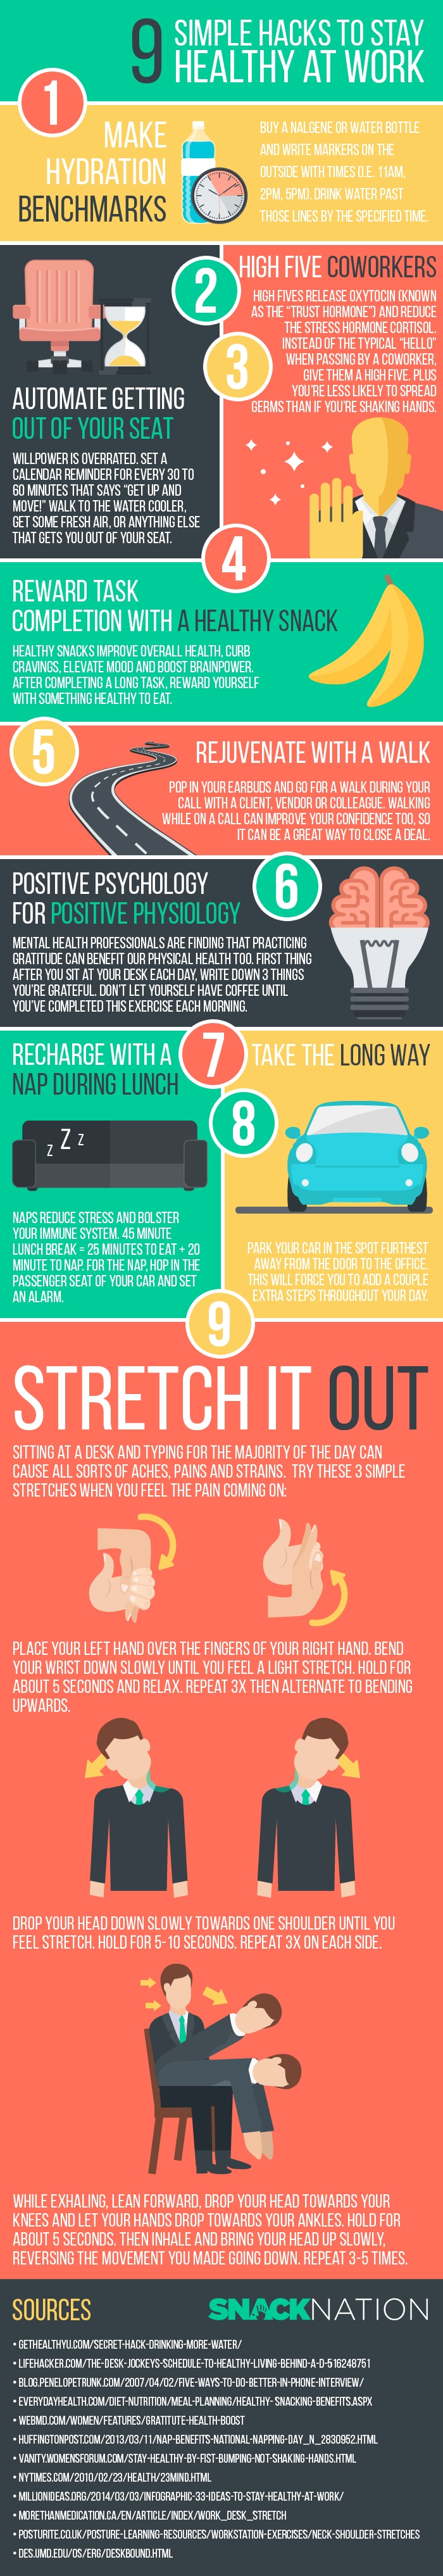 9-simple-hacks-to-stay-healthy-at-work-infographic-min (1)